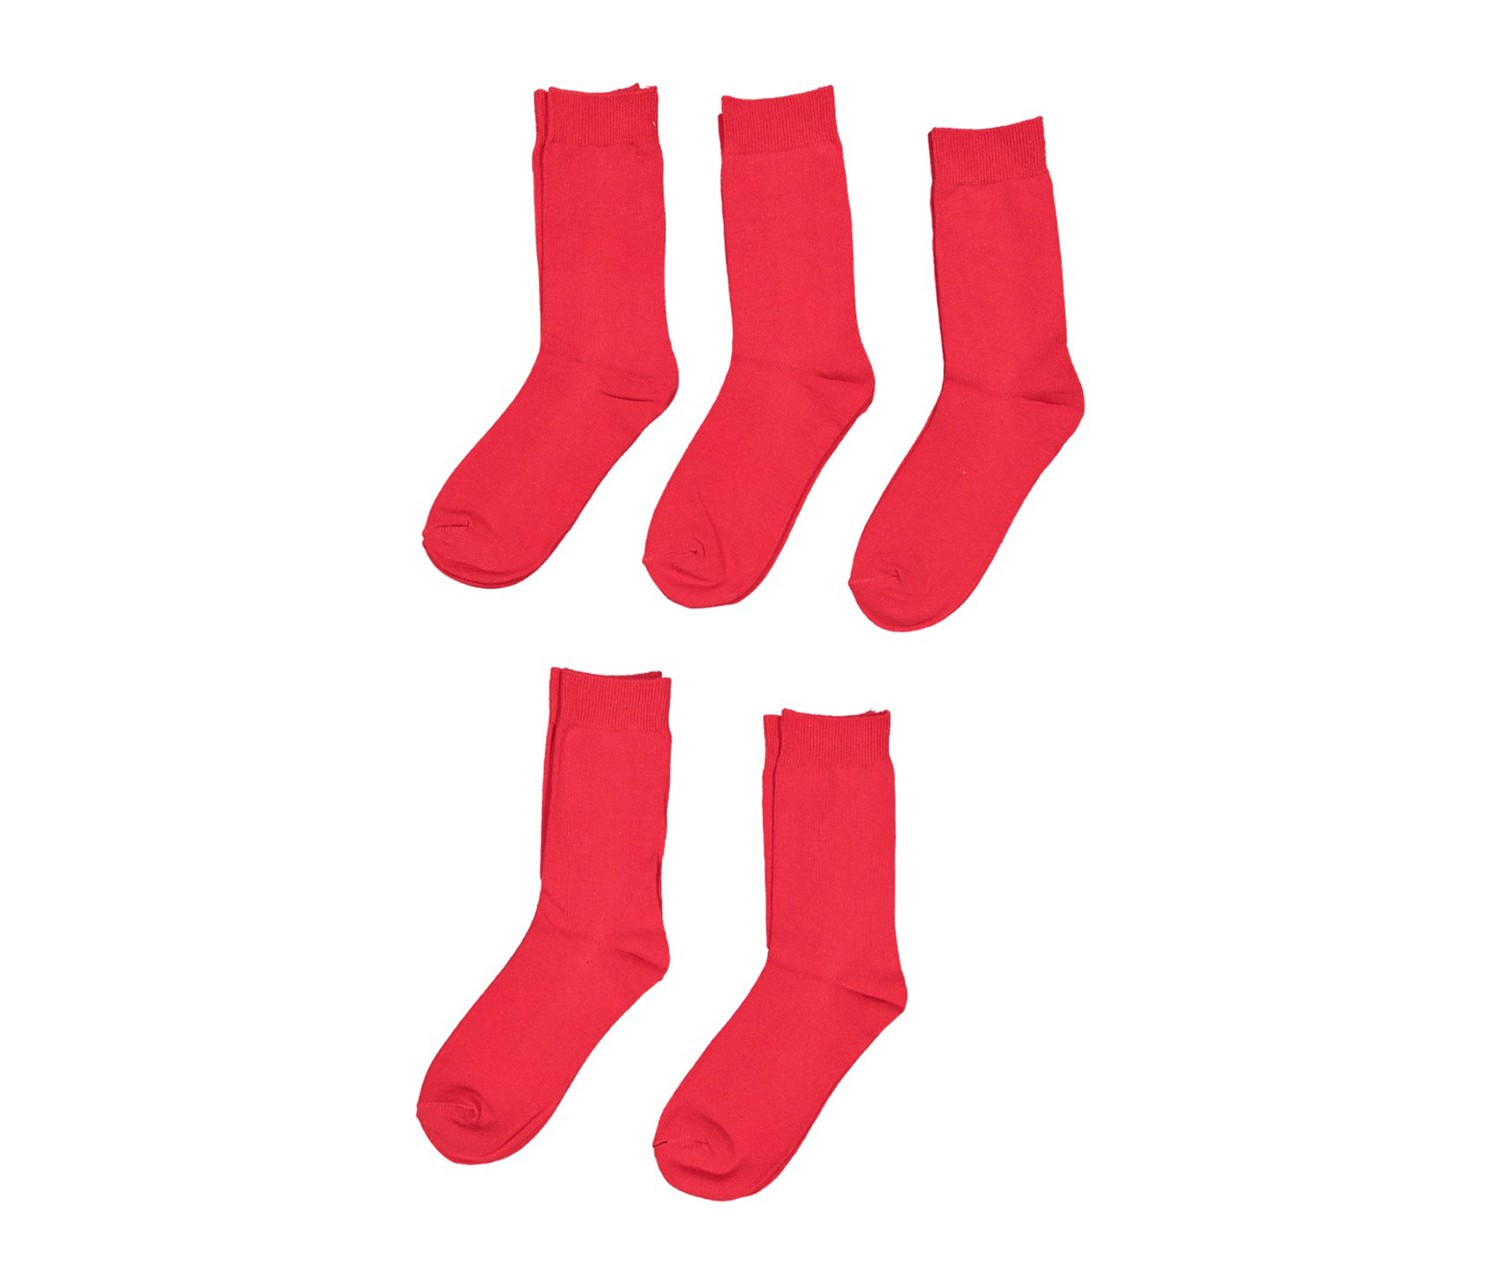 Lefties Girl 5 Pack Socks, Red